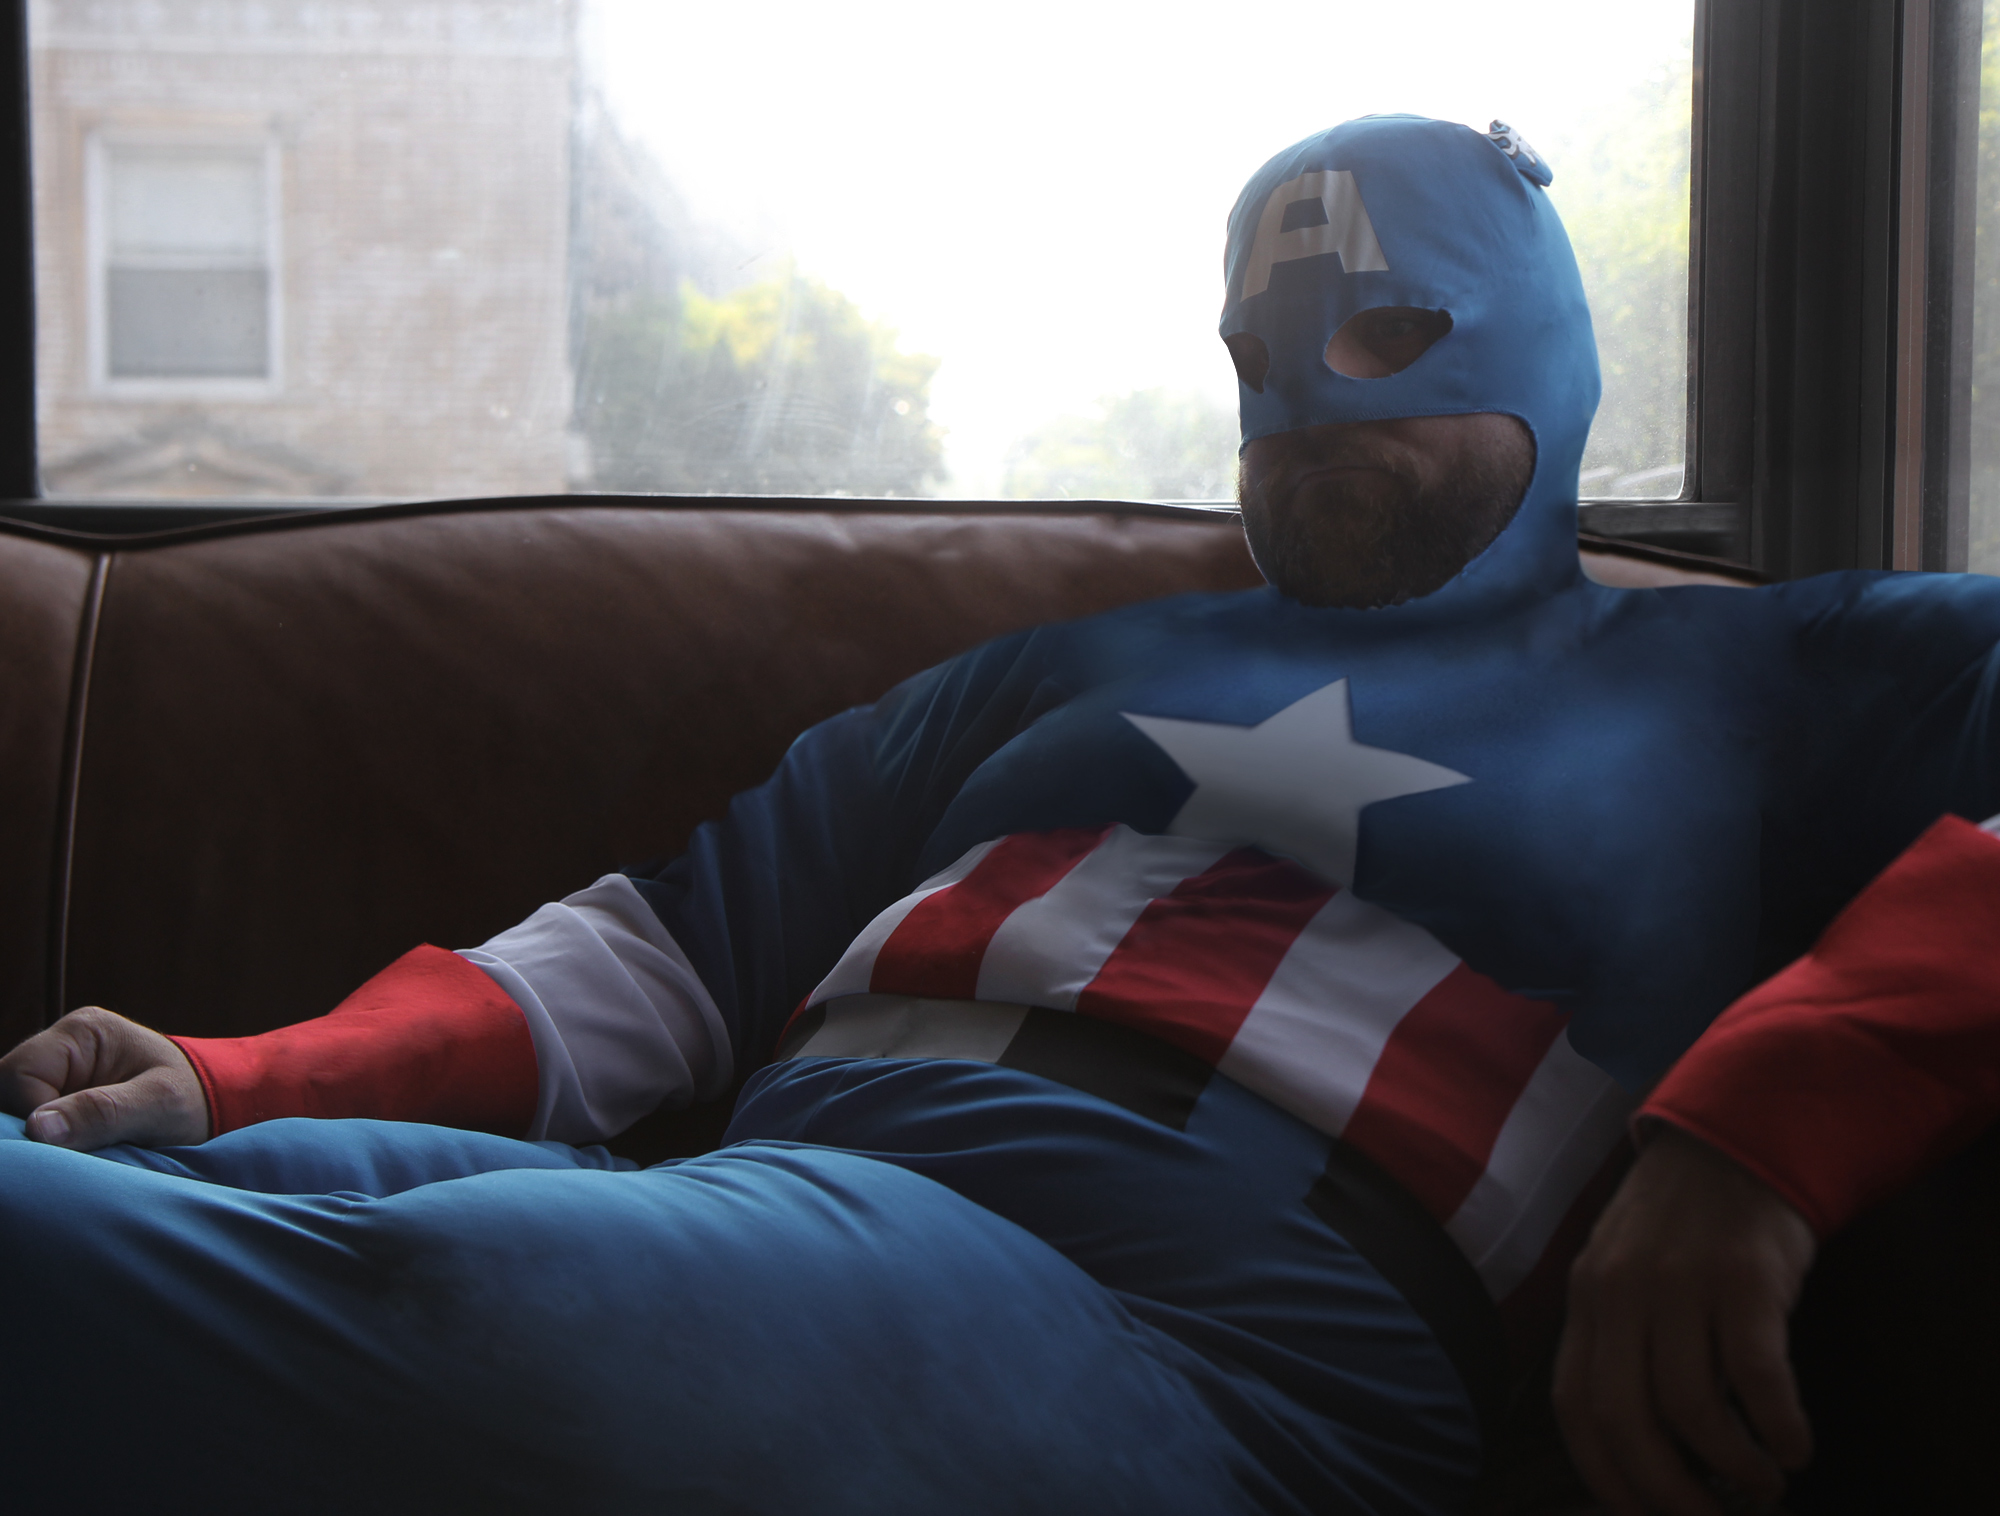 'Captain Actual America' Overweight, Hopelessly In Debt                               July 16, 2012